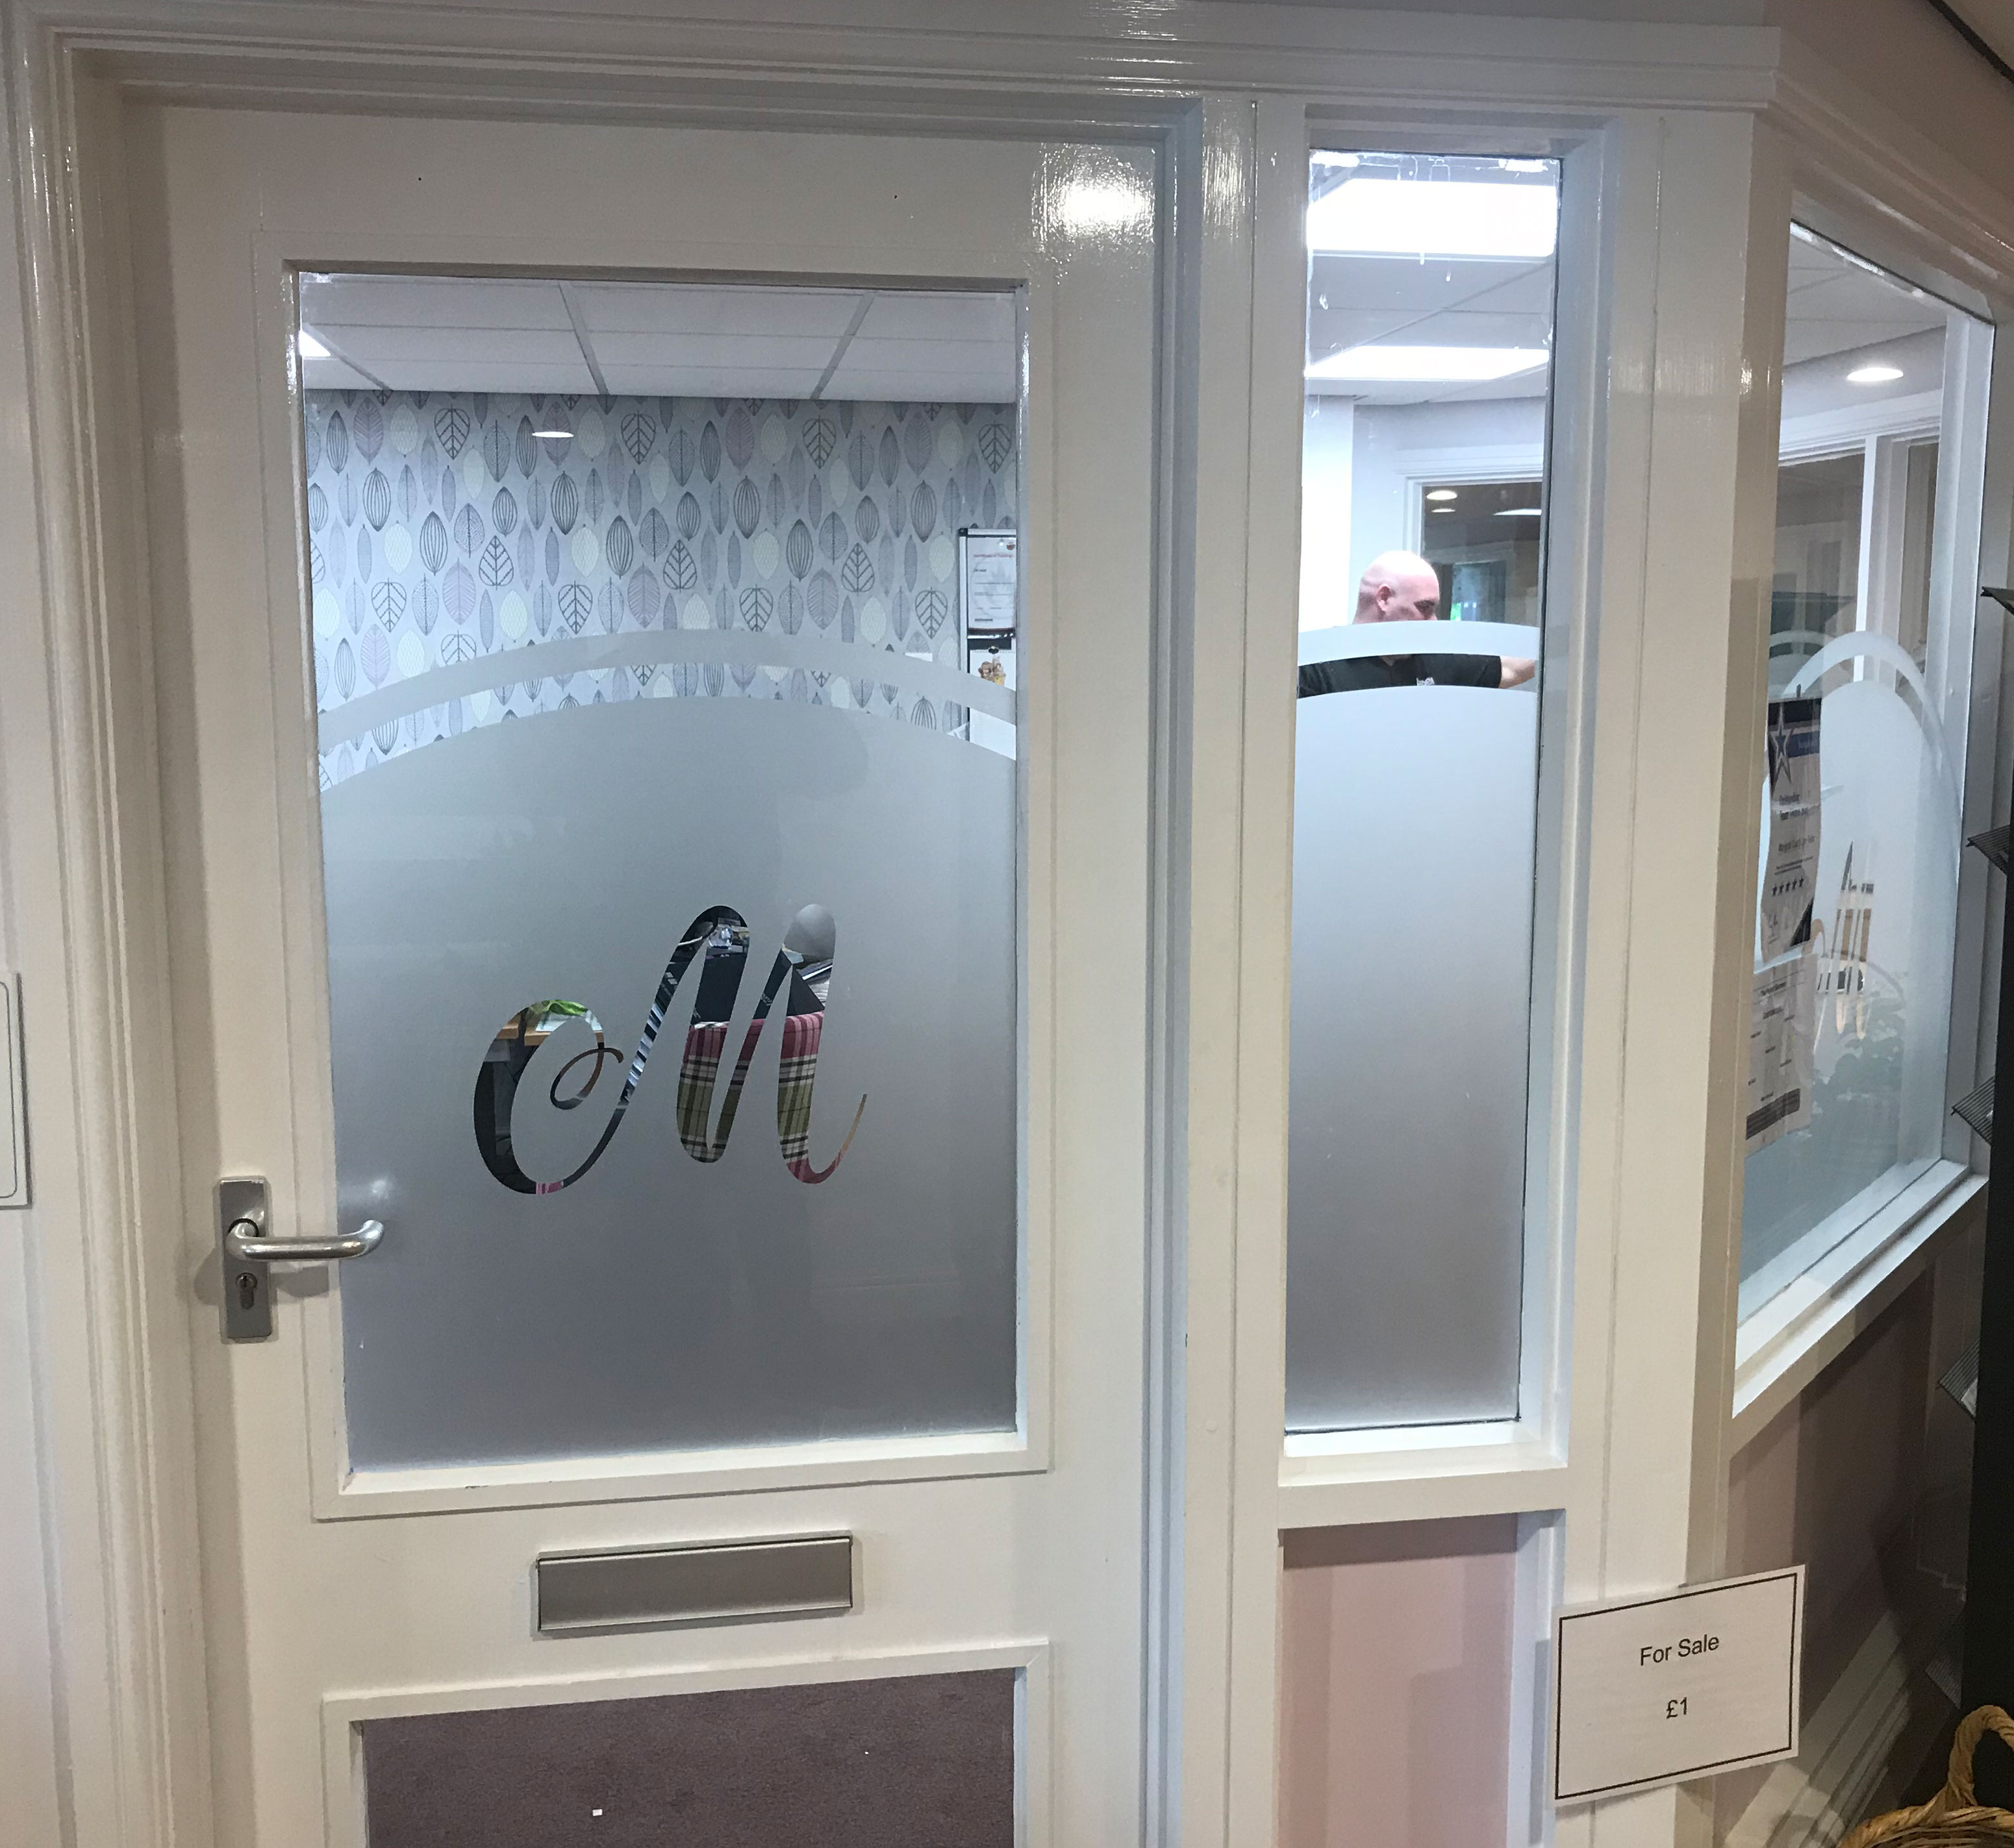 2. Marigold care home Gateshead fitted with frosted vinyl design